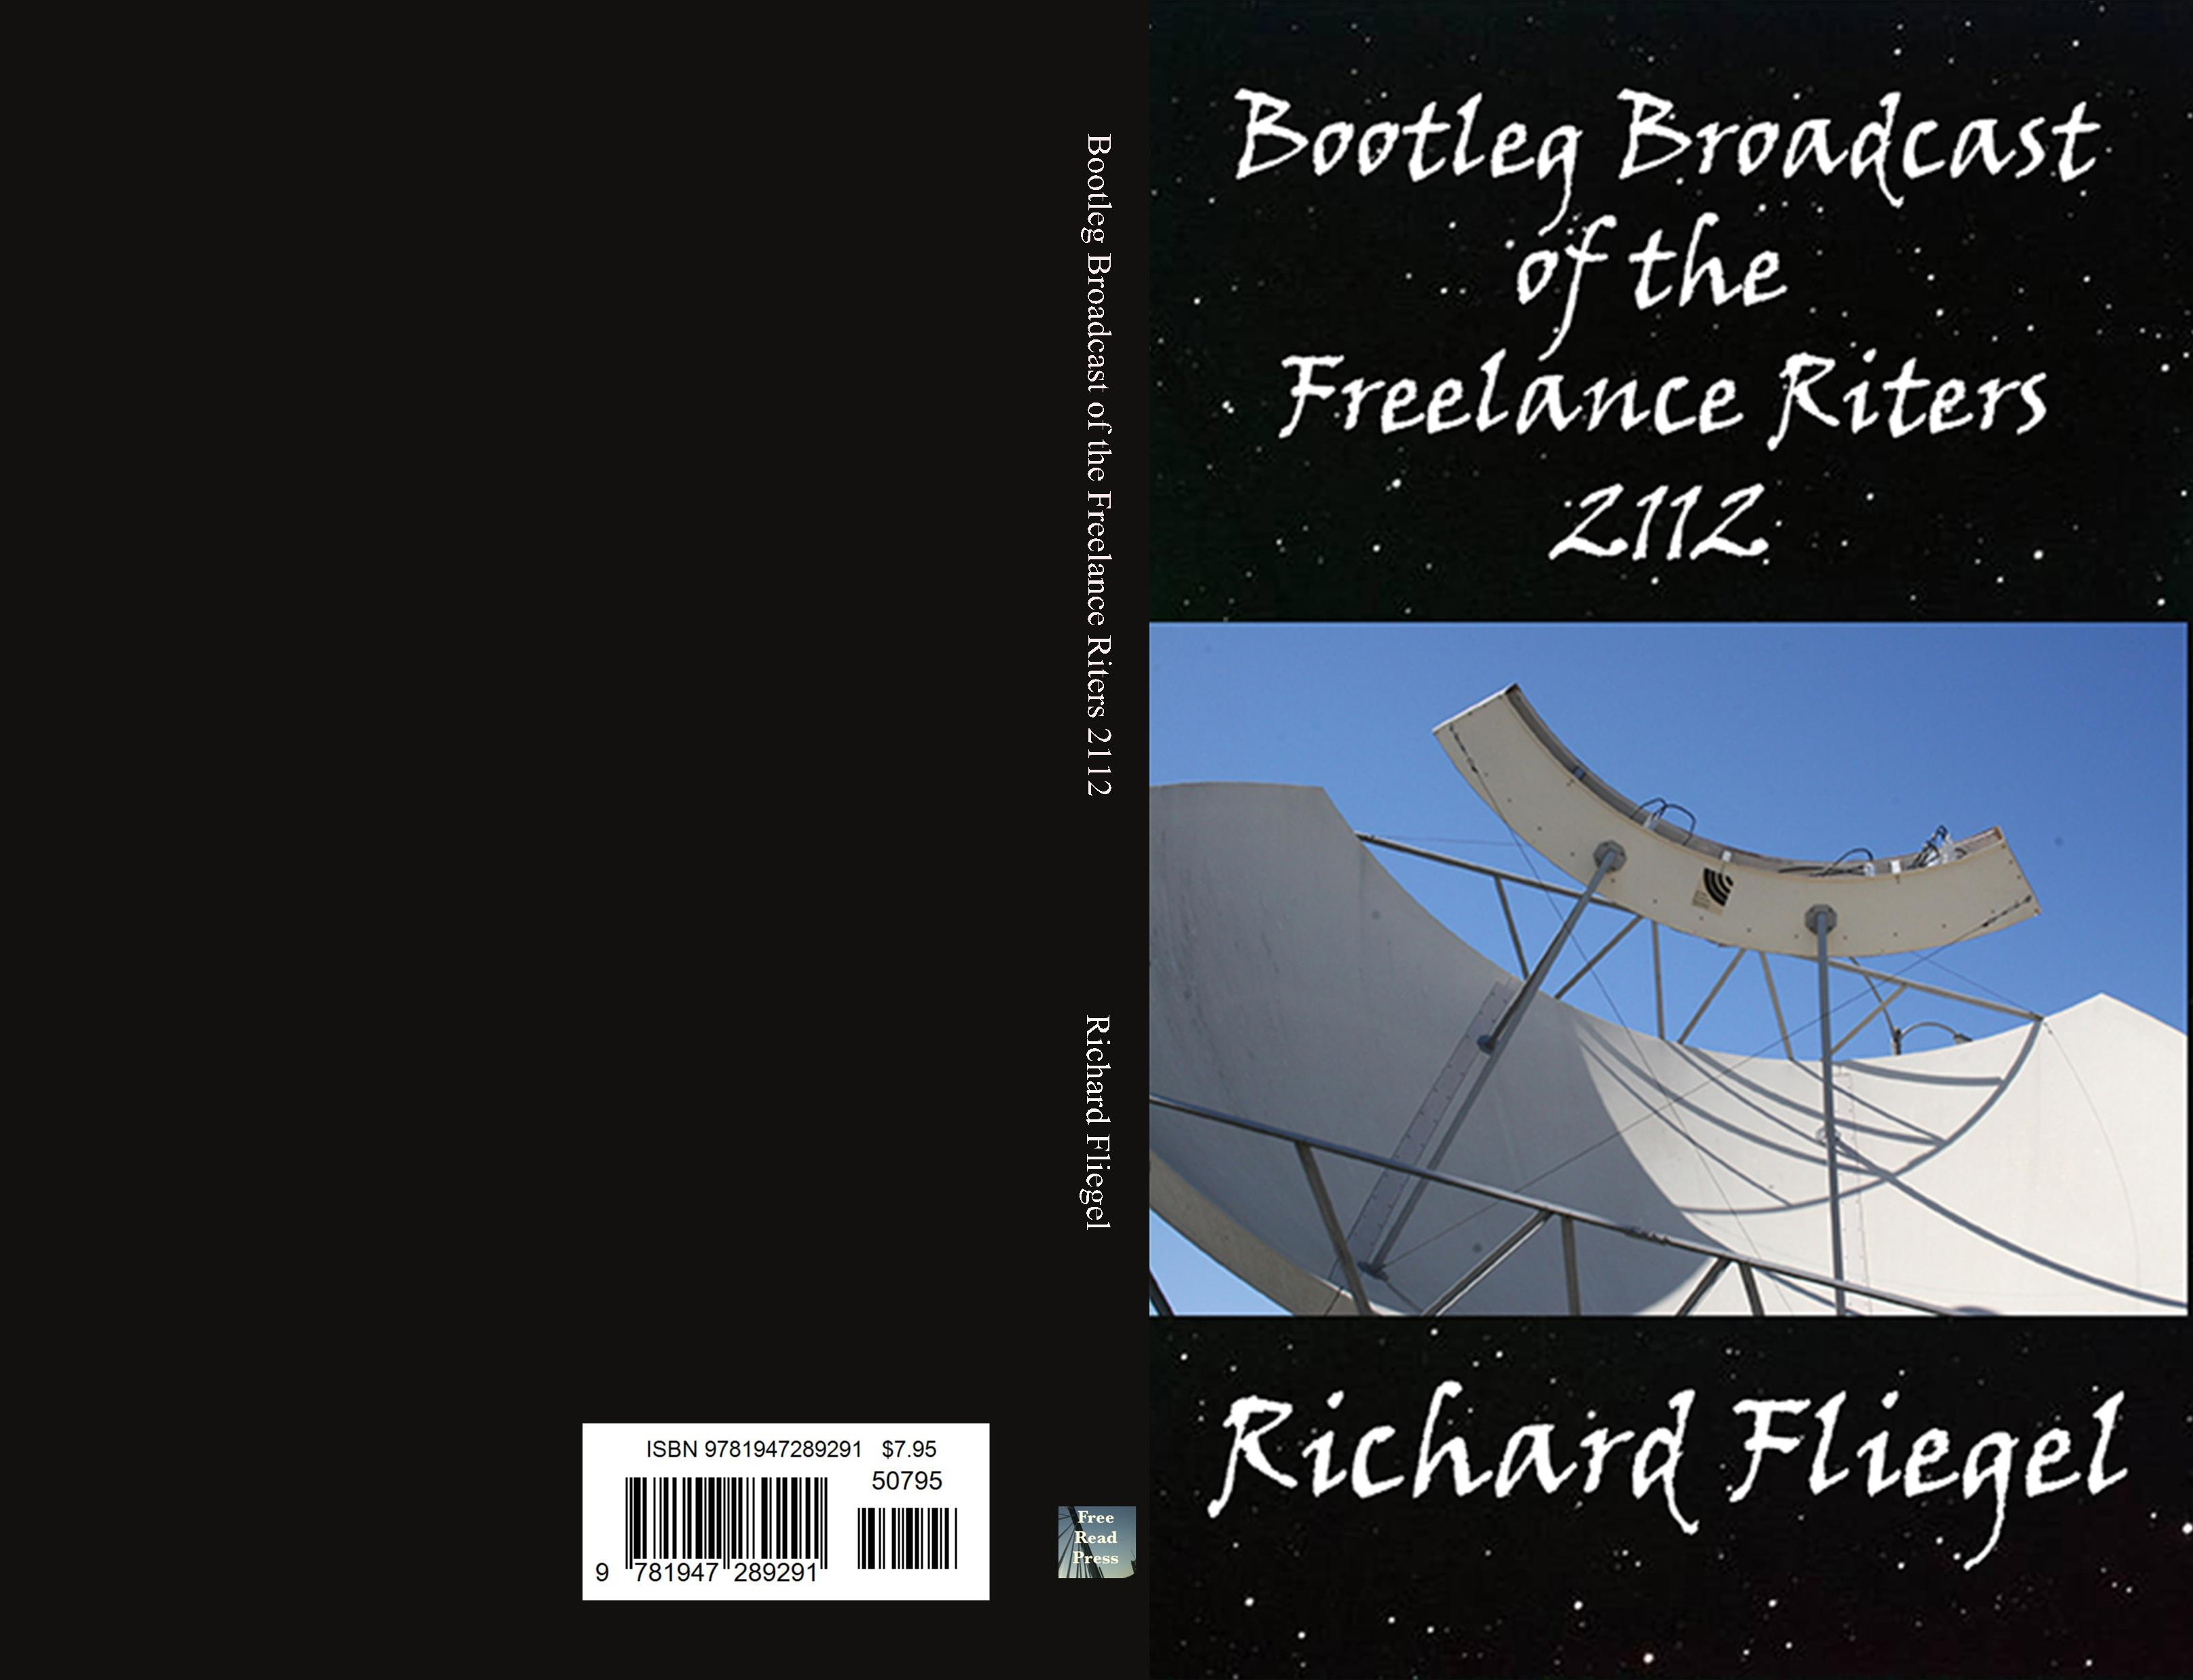 Bootleg Broadcast of the Freelance Riters 2112 cover image